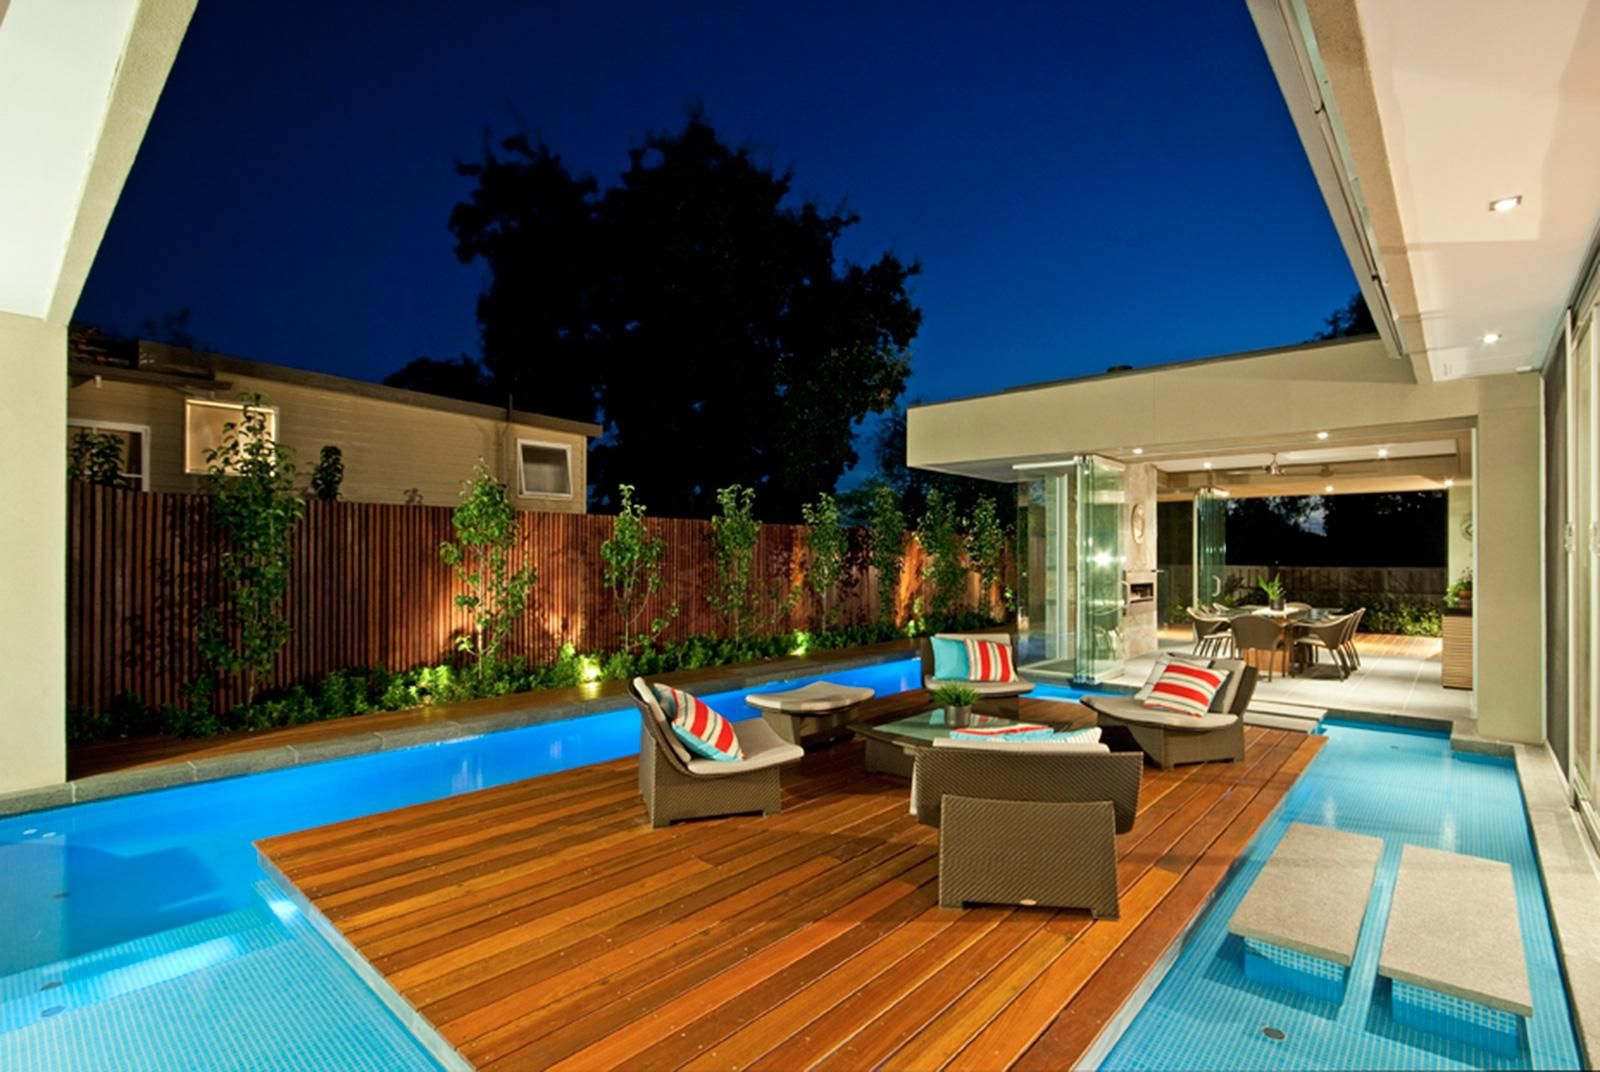 Wonderful swimming pool design idea with wooden floor deck - Decke modern ...